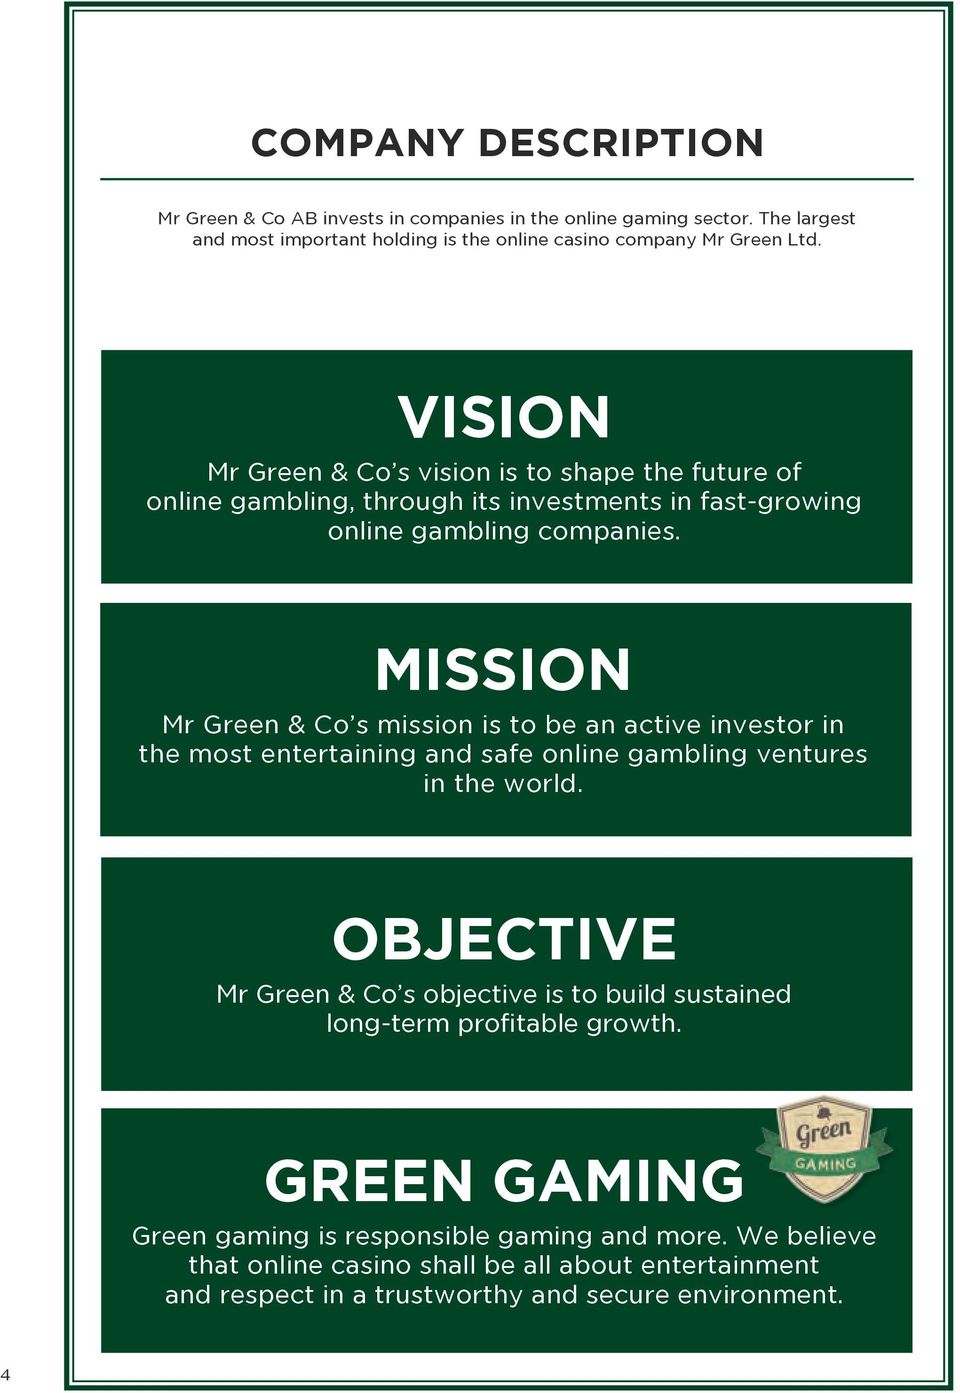 MISSION Mr Green & Co s mission is to be an active investor in the most entertaining and safe online gambling ventures in the world.